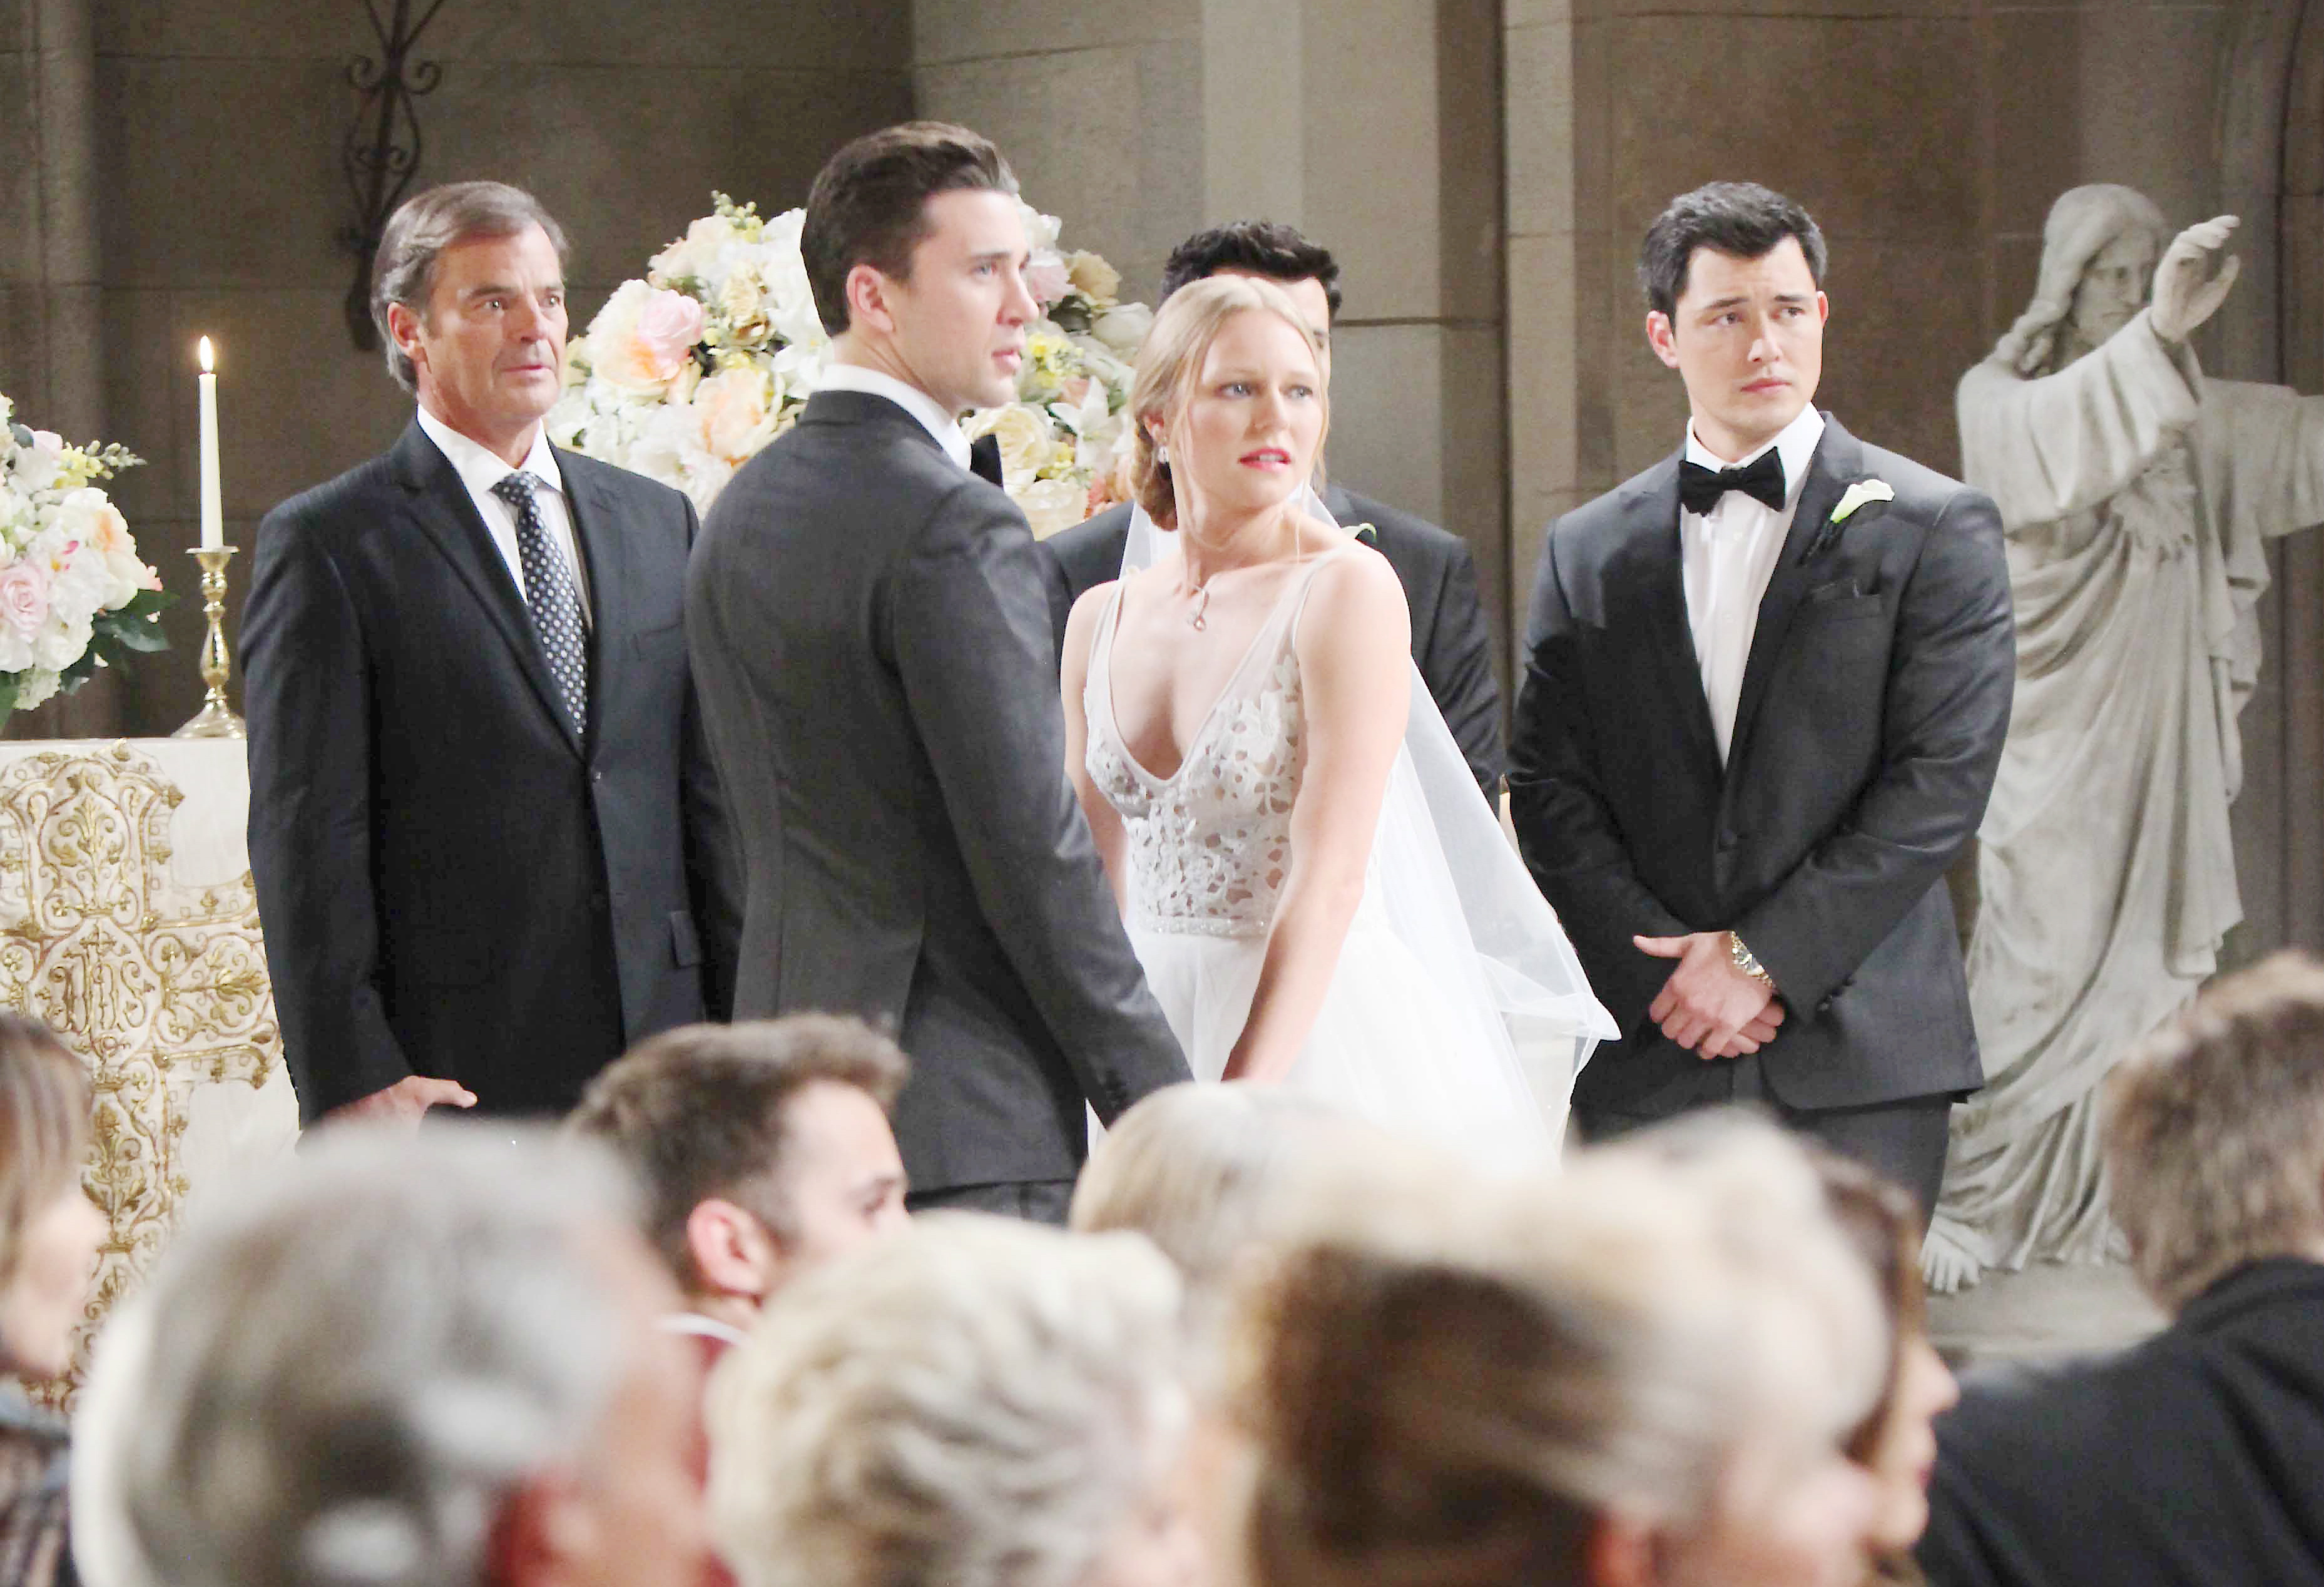 Days of Our Lives Spoilers: Chad, Abby, Sonny, and Chad are shocked when a mysterious guest crashes the wedding.